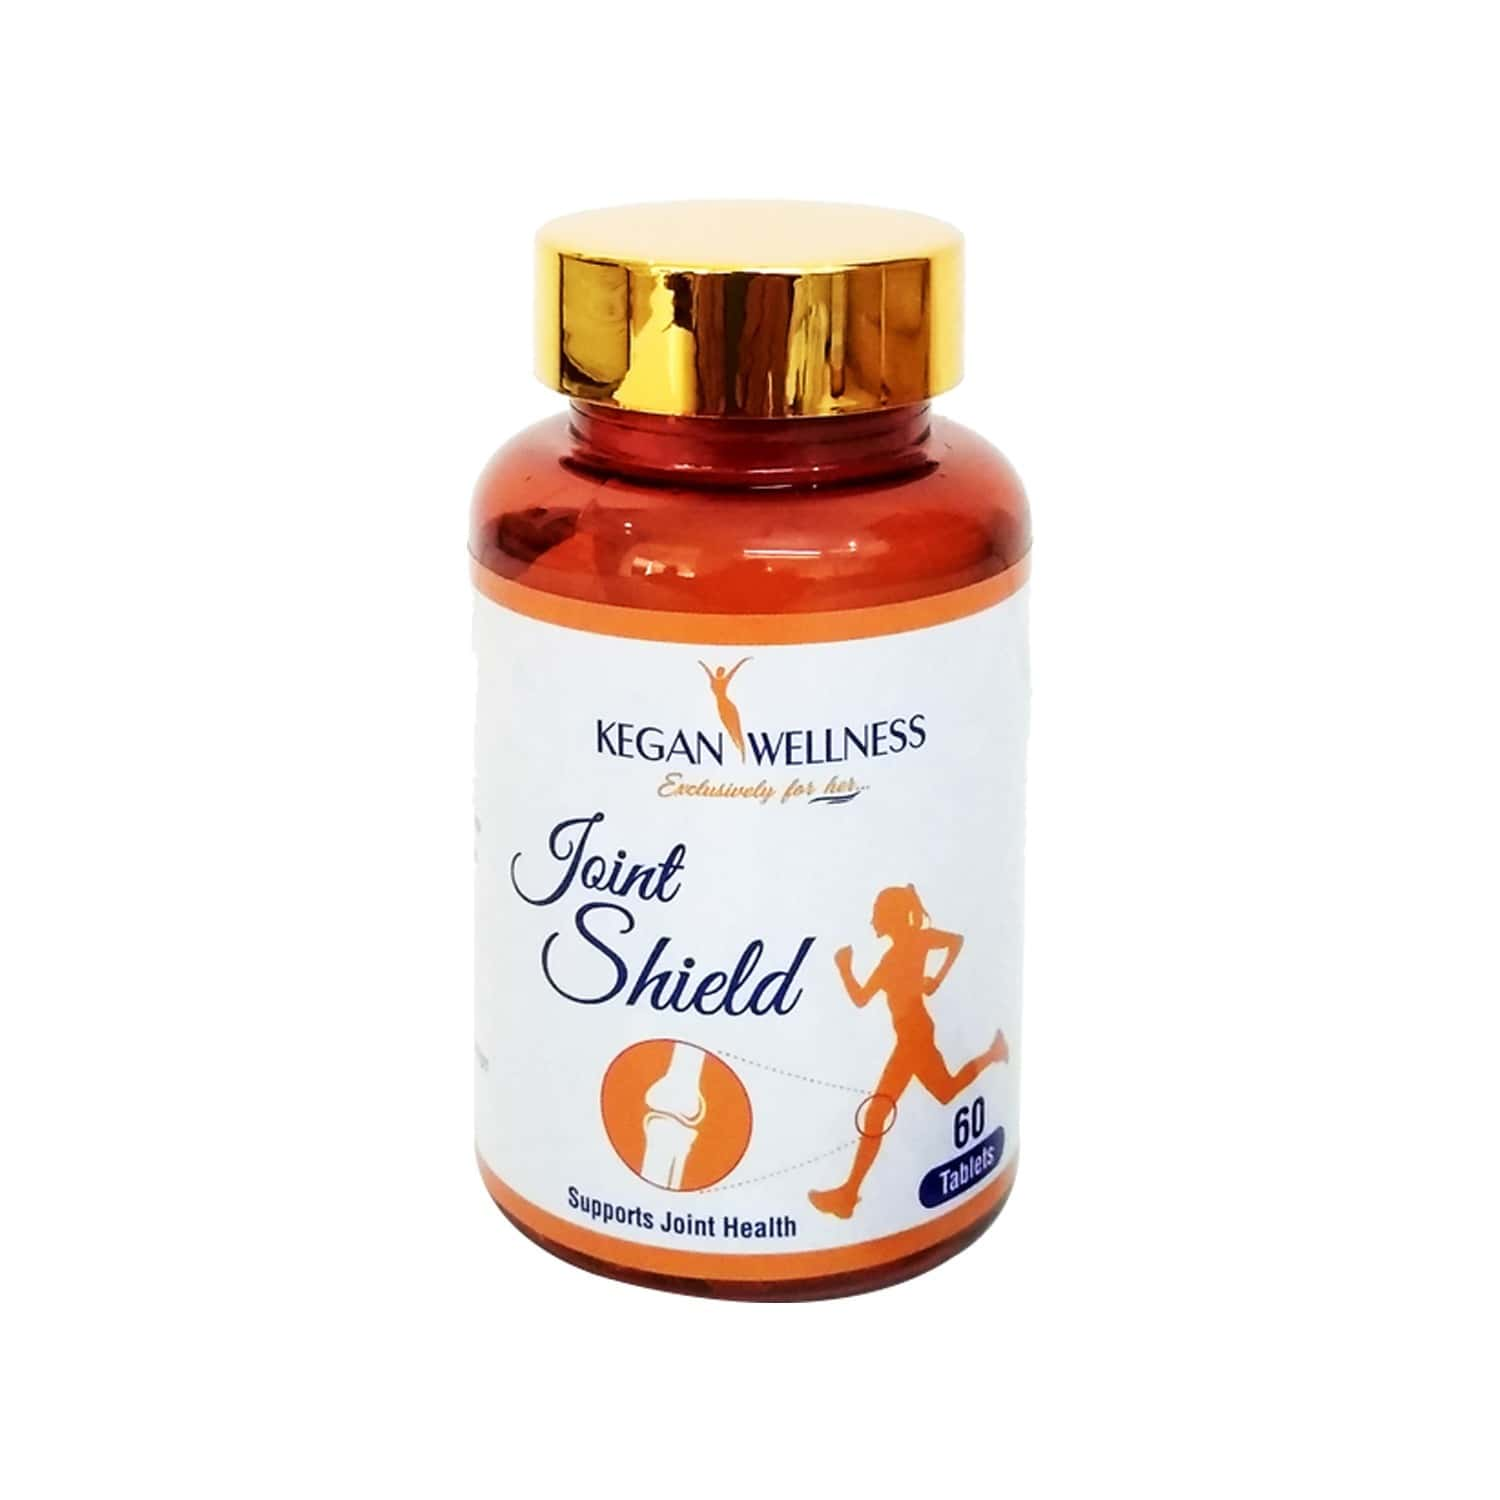 Kegan Wellness Jointshield-joints Pain Supplements 60's